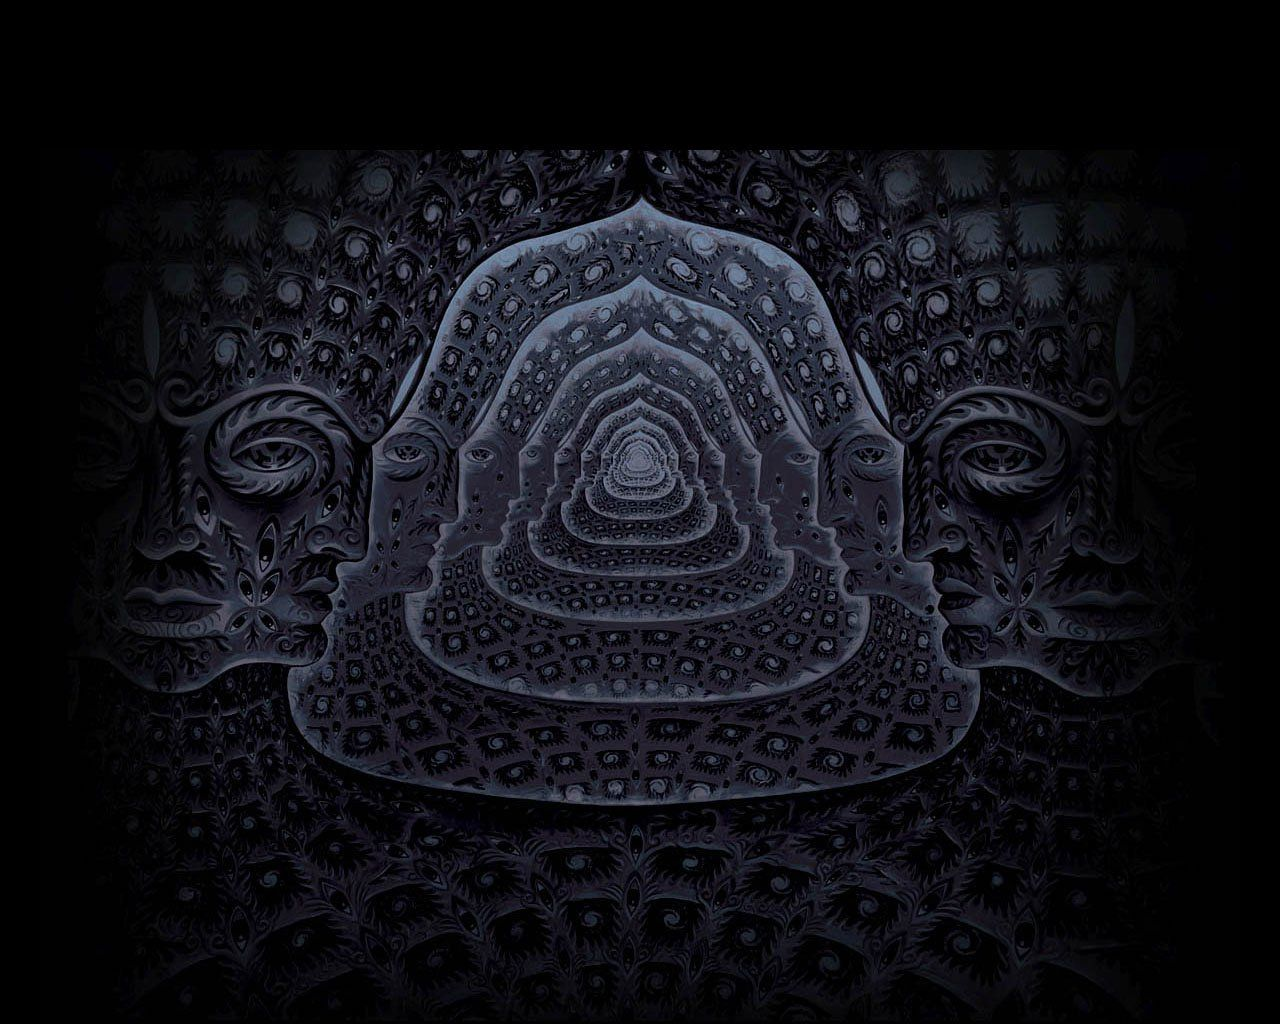 Pin by Bruno Serrano on Tool in 2019 | Tool band, Tool music, Tool